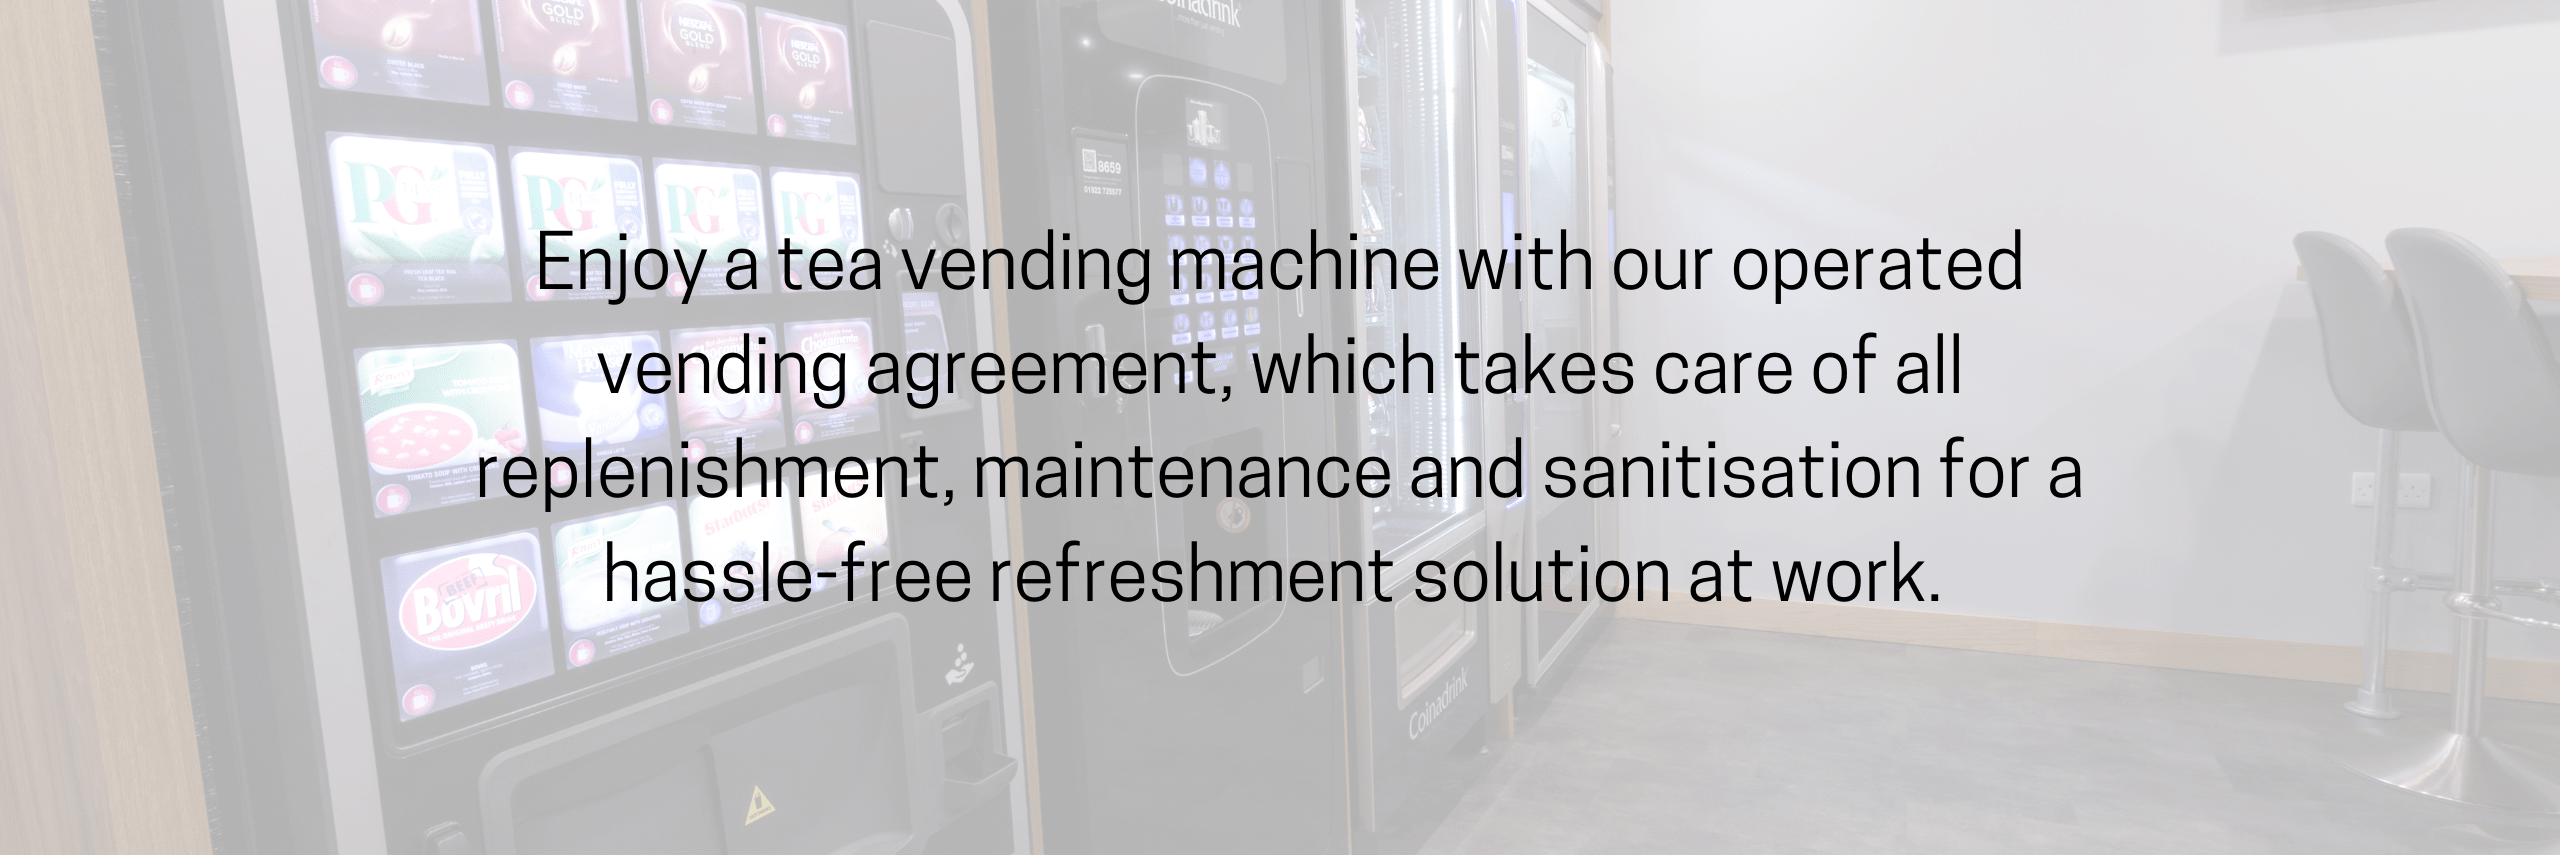 Enjoy a tea vending machine with our operated vending agreement, which takes care of all replenishment, maintenance and sanitisation for a hassle-free refreshment solution at work.